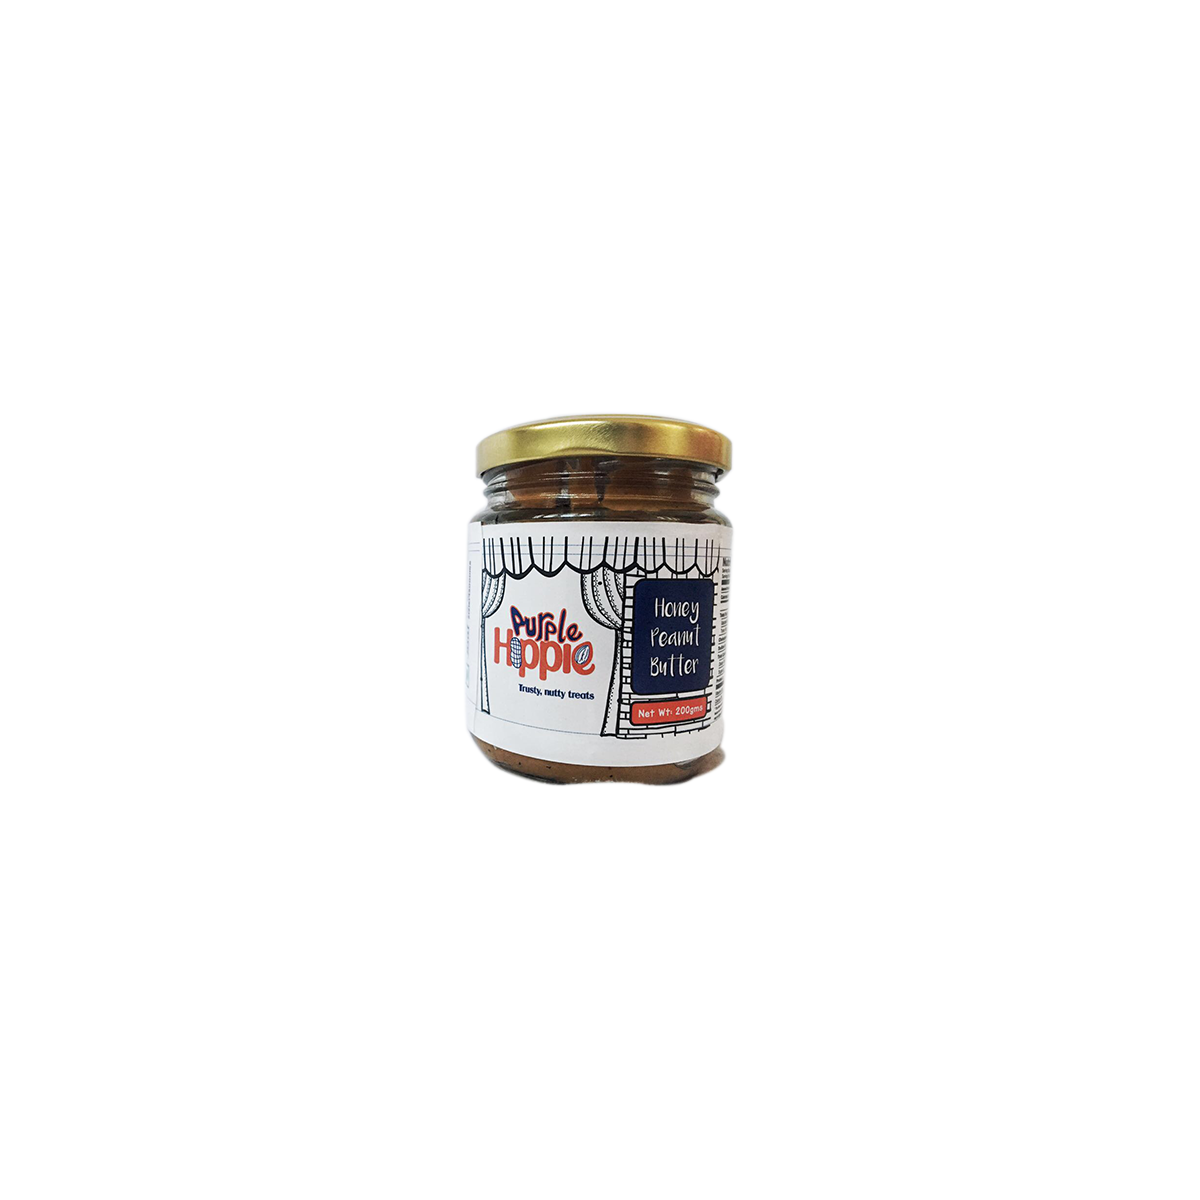 Purple Hippie Organic Honey Peanut Butter